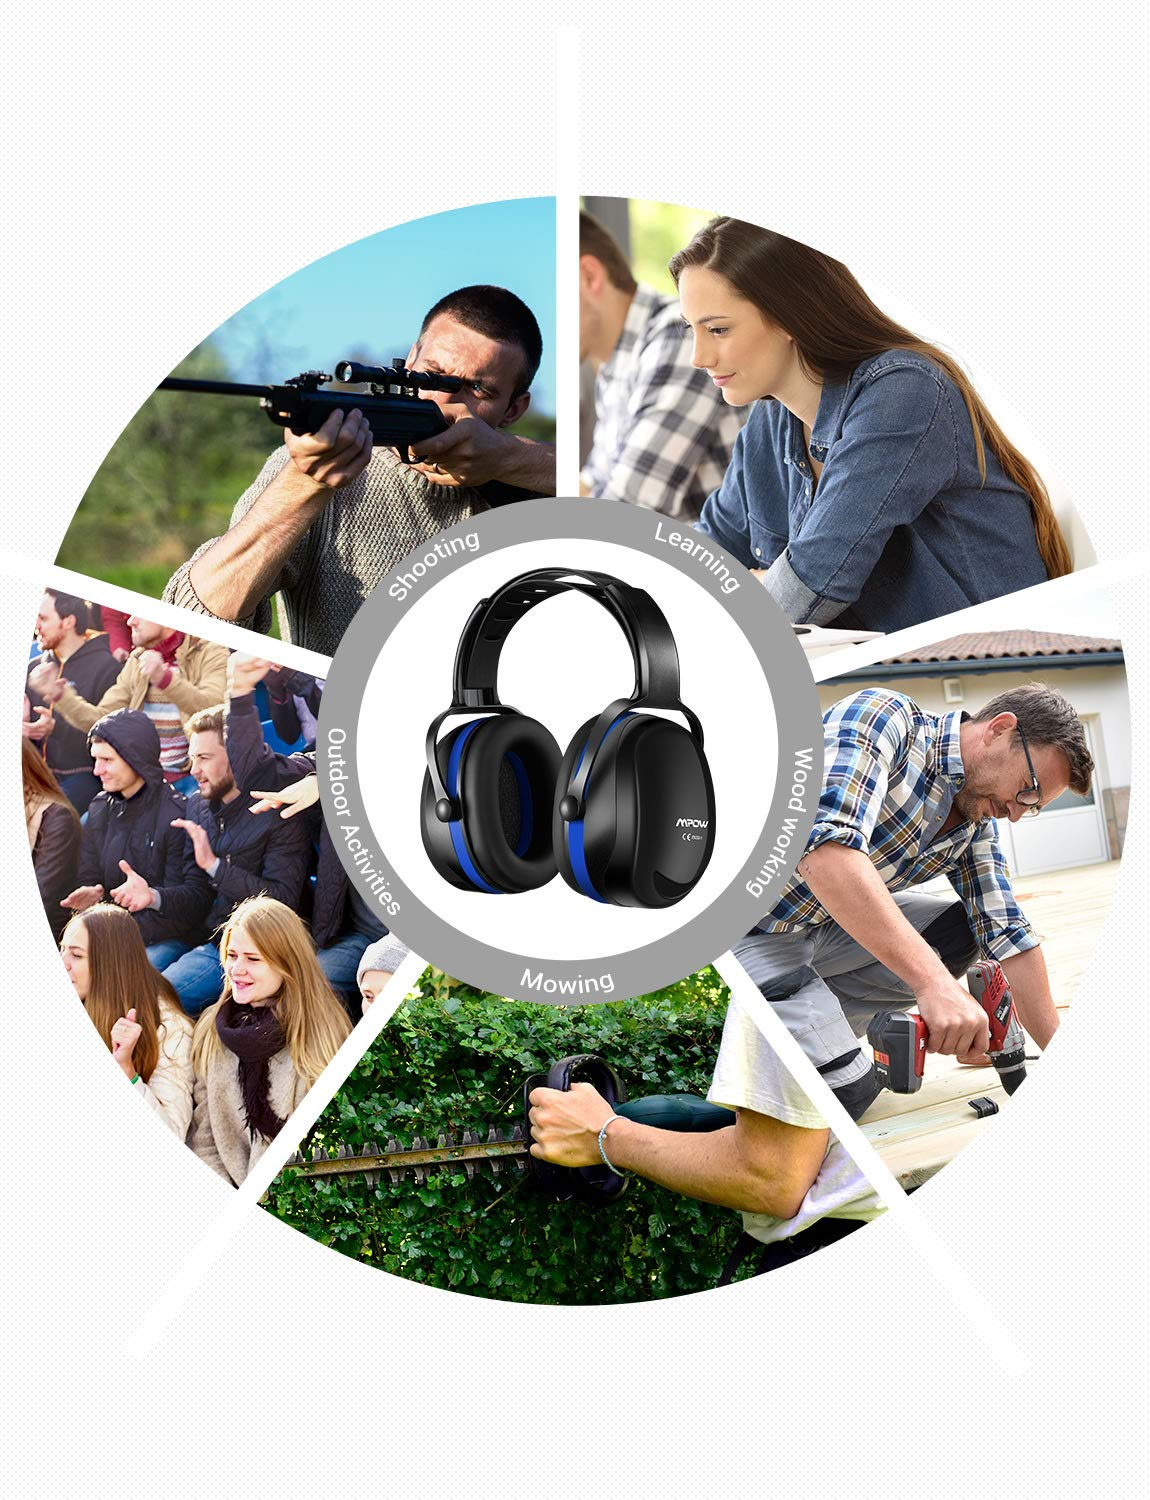 Mpow [Upgraded] Noise Reduction Safety Ear Muffs, Adjustable SNR 36dB Shooting Hunting Muffs, Hearing Protection with a Carrying Bag, Ear Defenders Fits Adults to Kids with Twist Resistant Handband by Mpow (Image #7)